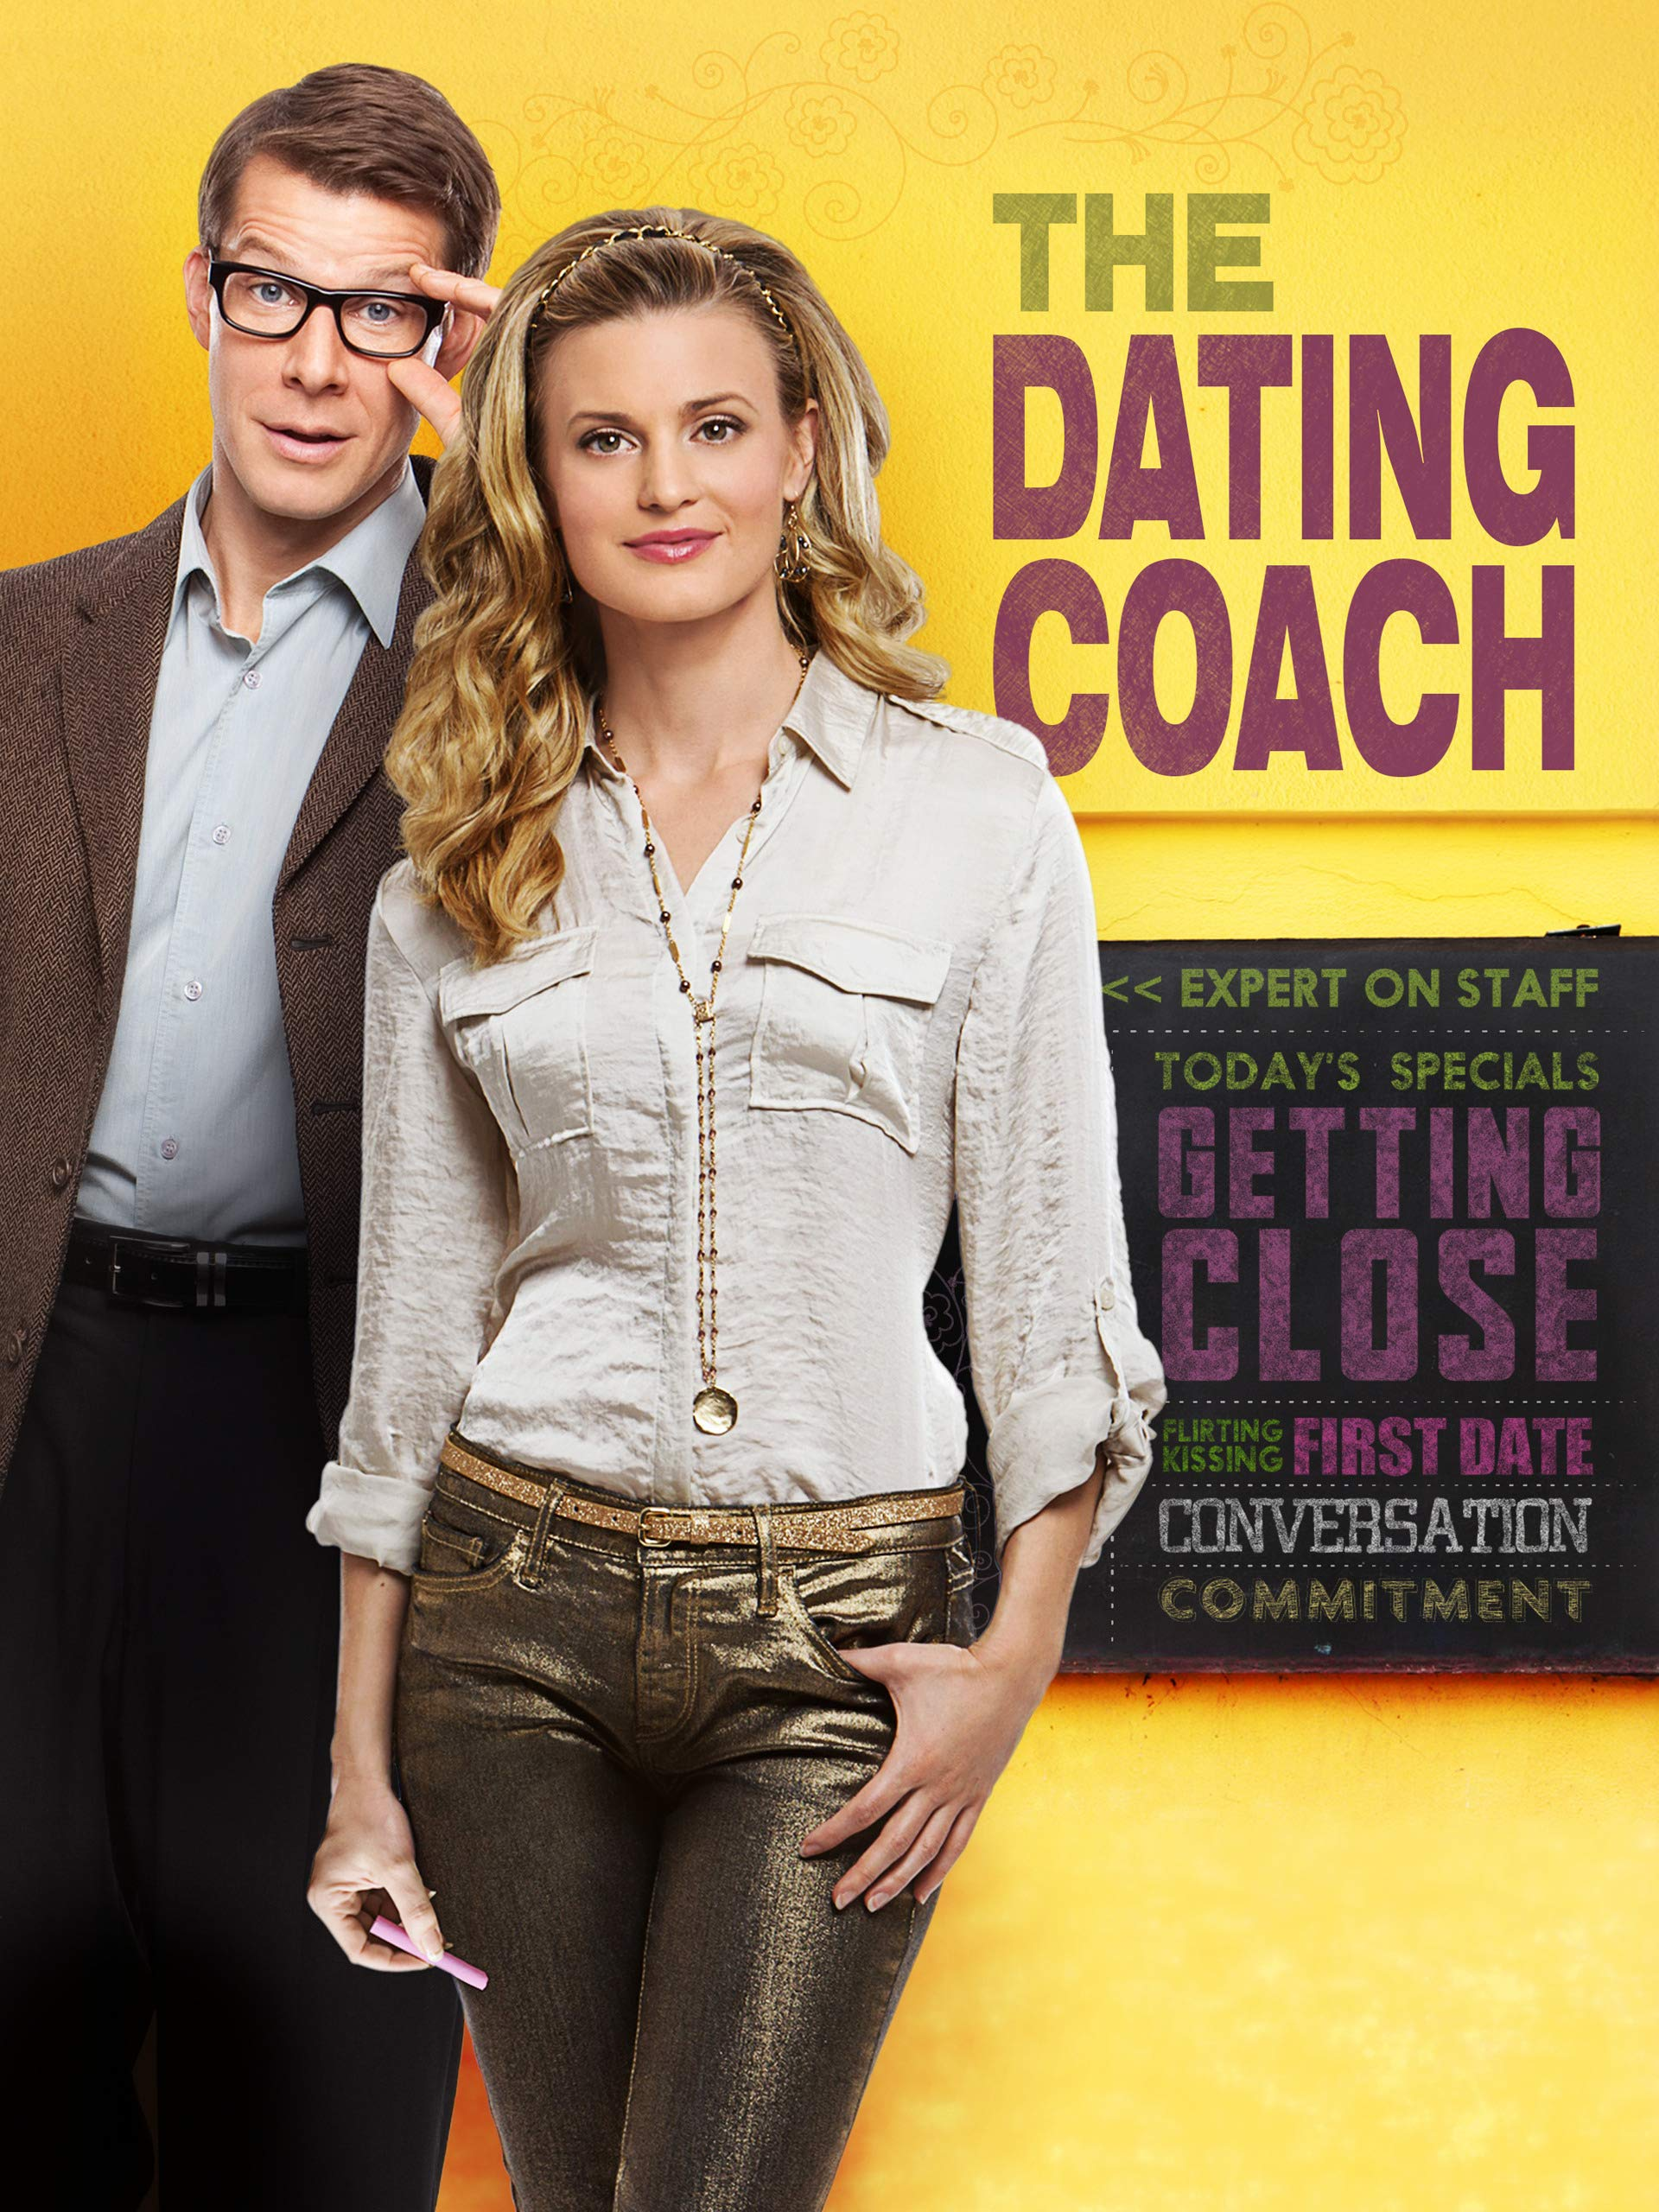 The dating coach how much is speed dating